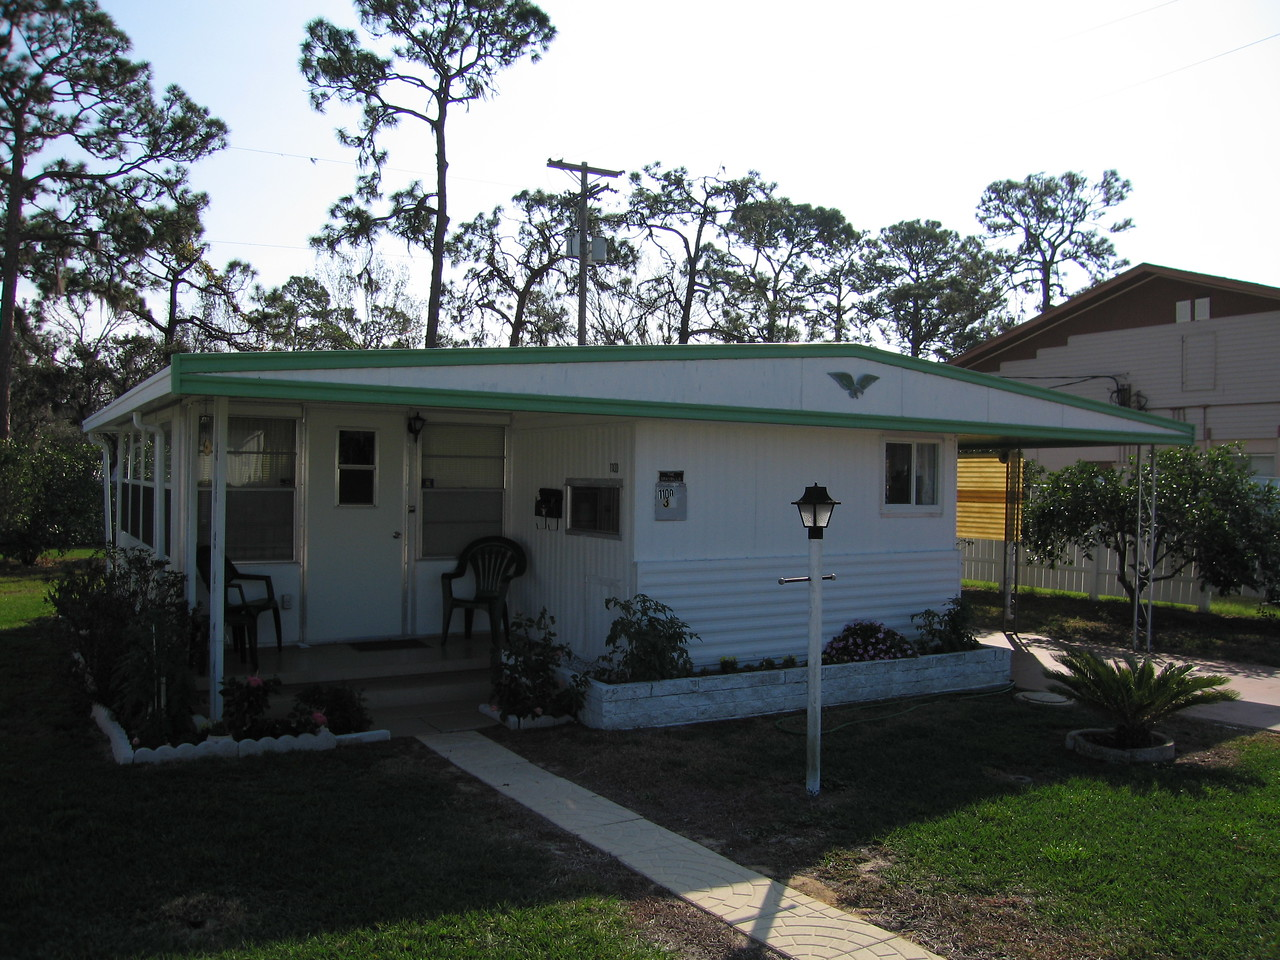 We landed in Orlando and were picked up by Mom and Harold and their friends, Paul and Carol.  This is Mom and Harold's winter home in Sebring, FL